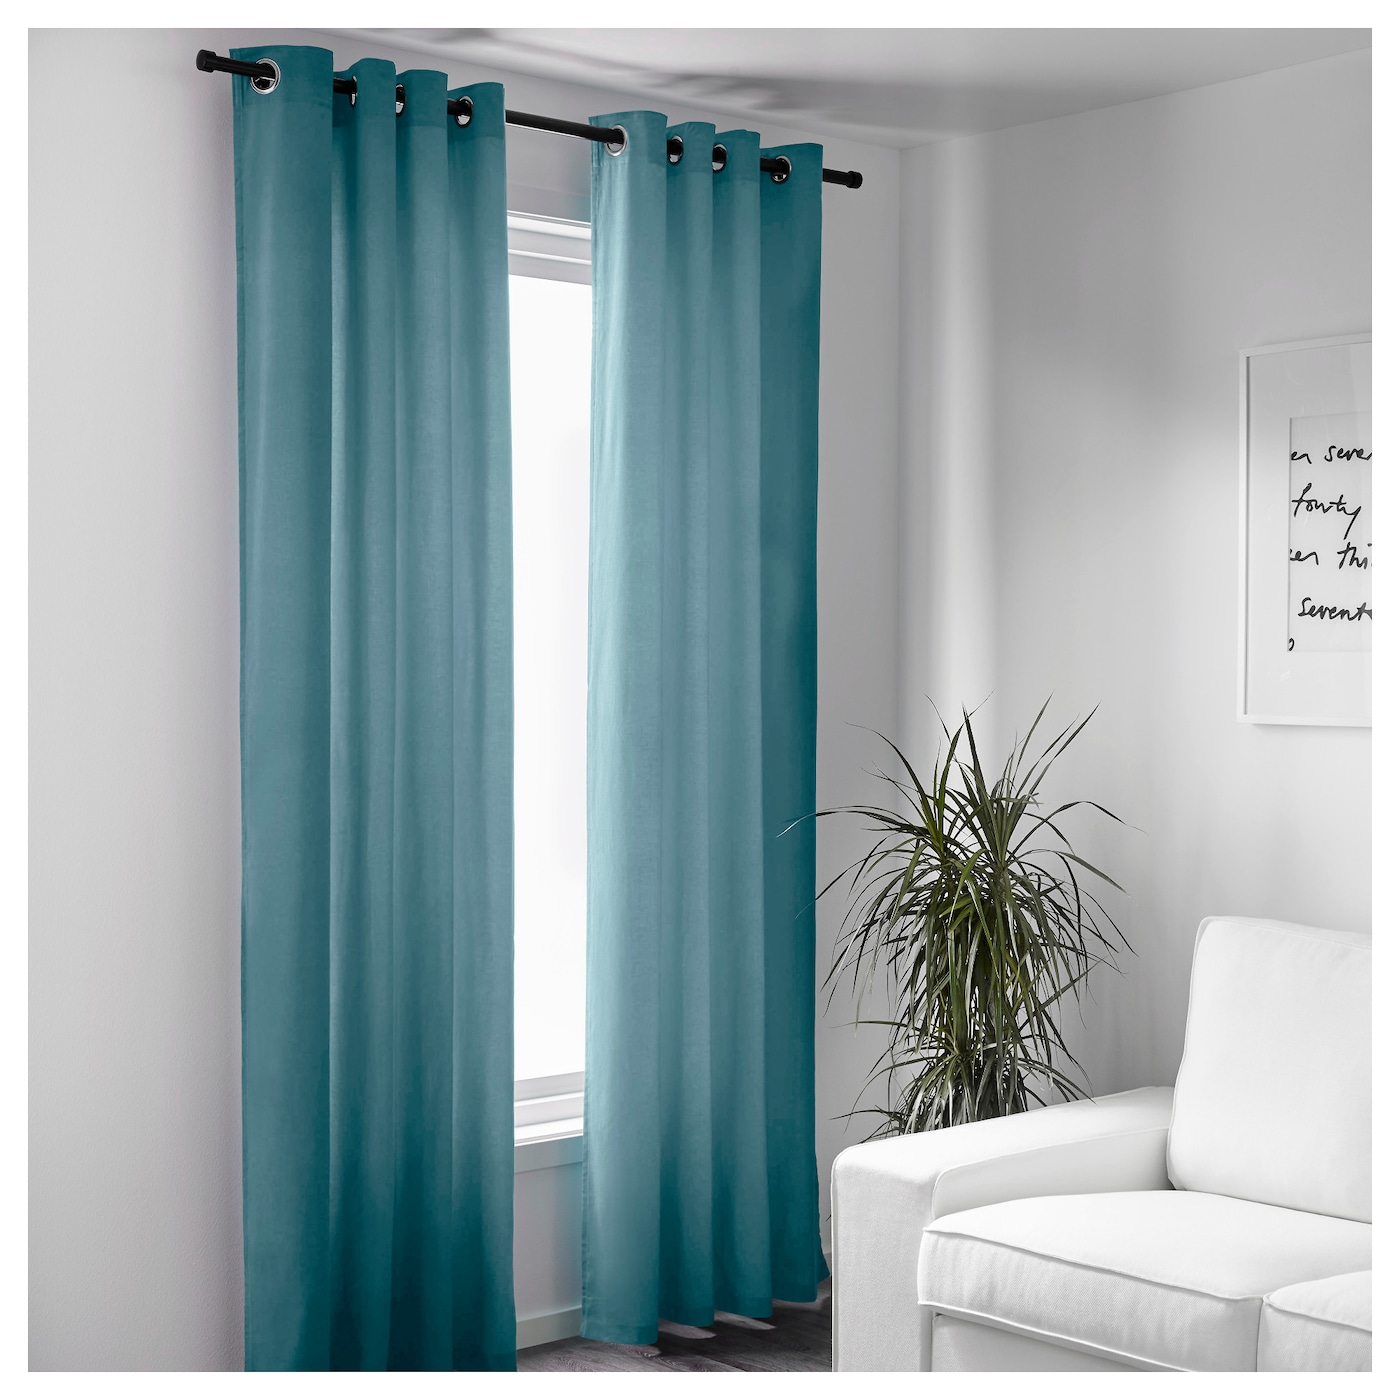 SANELA Curtains 1 Pair Light Turquoise 140x250 Cm